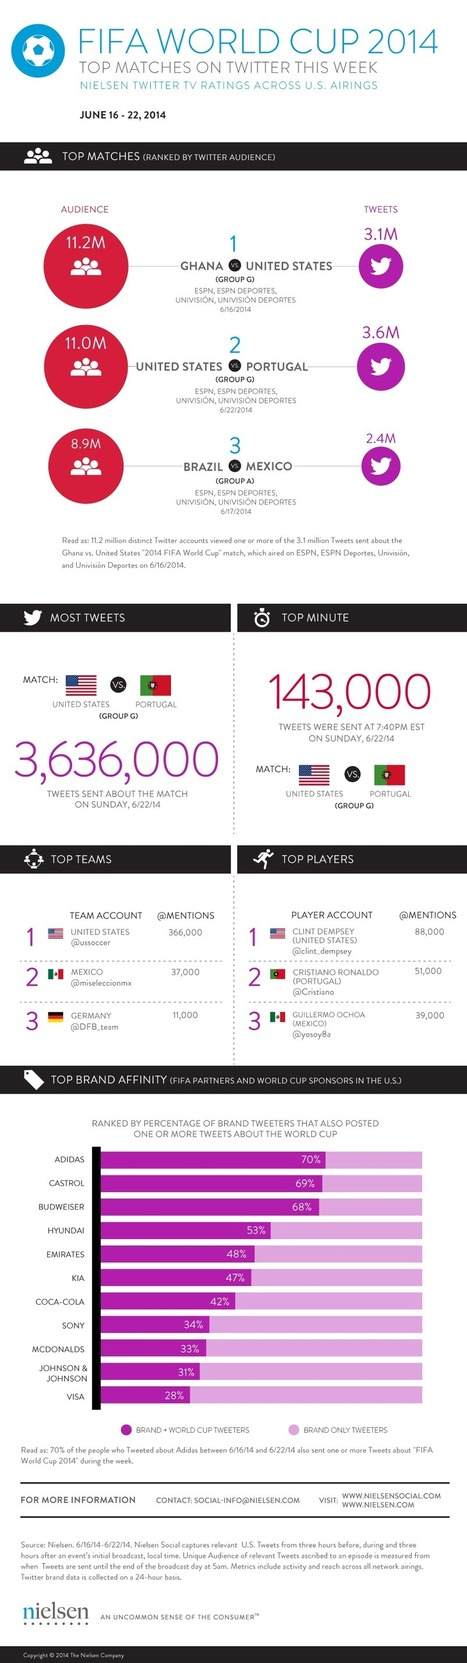 FIFA World Cup 2014: Top Matches On Twitter the Week of 6/16 - Nielsen Social | screen seriality | Scoop.it